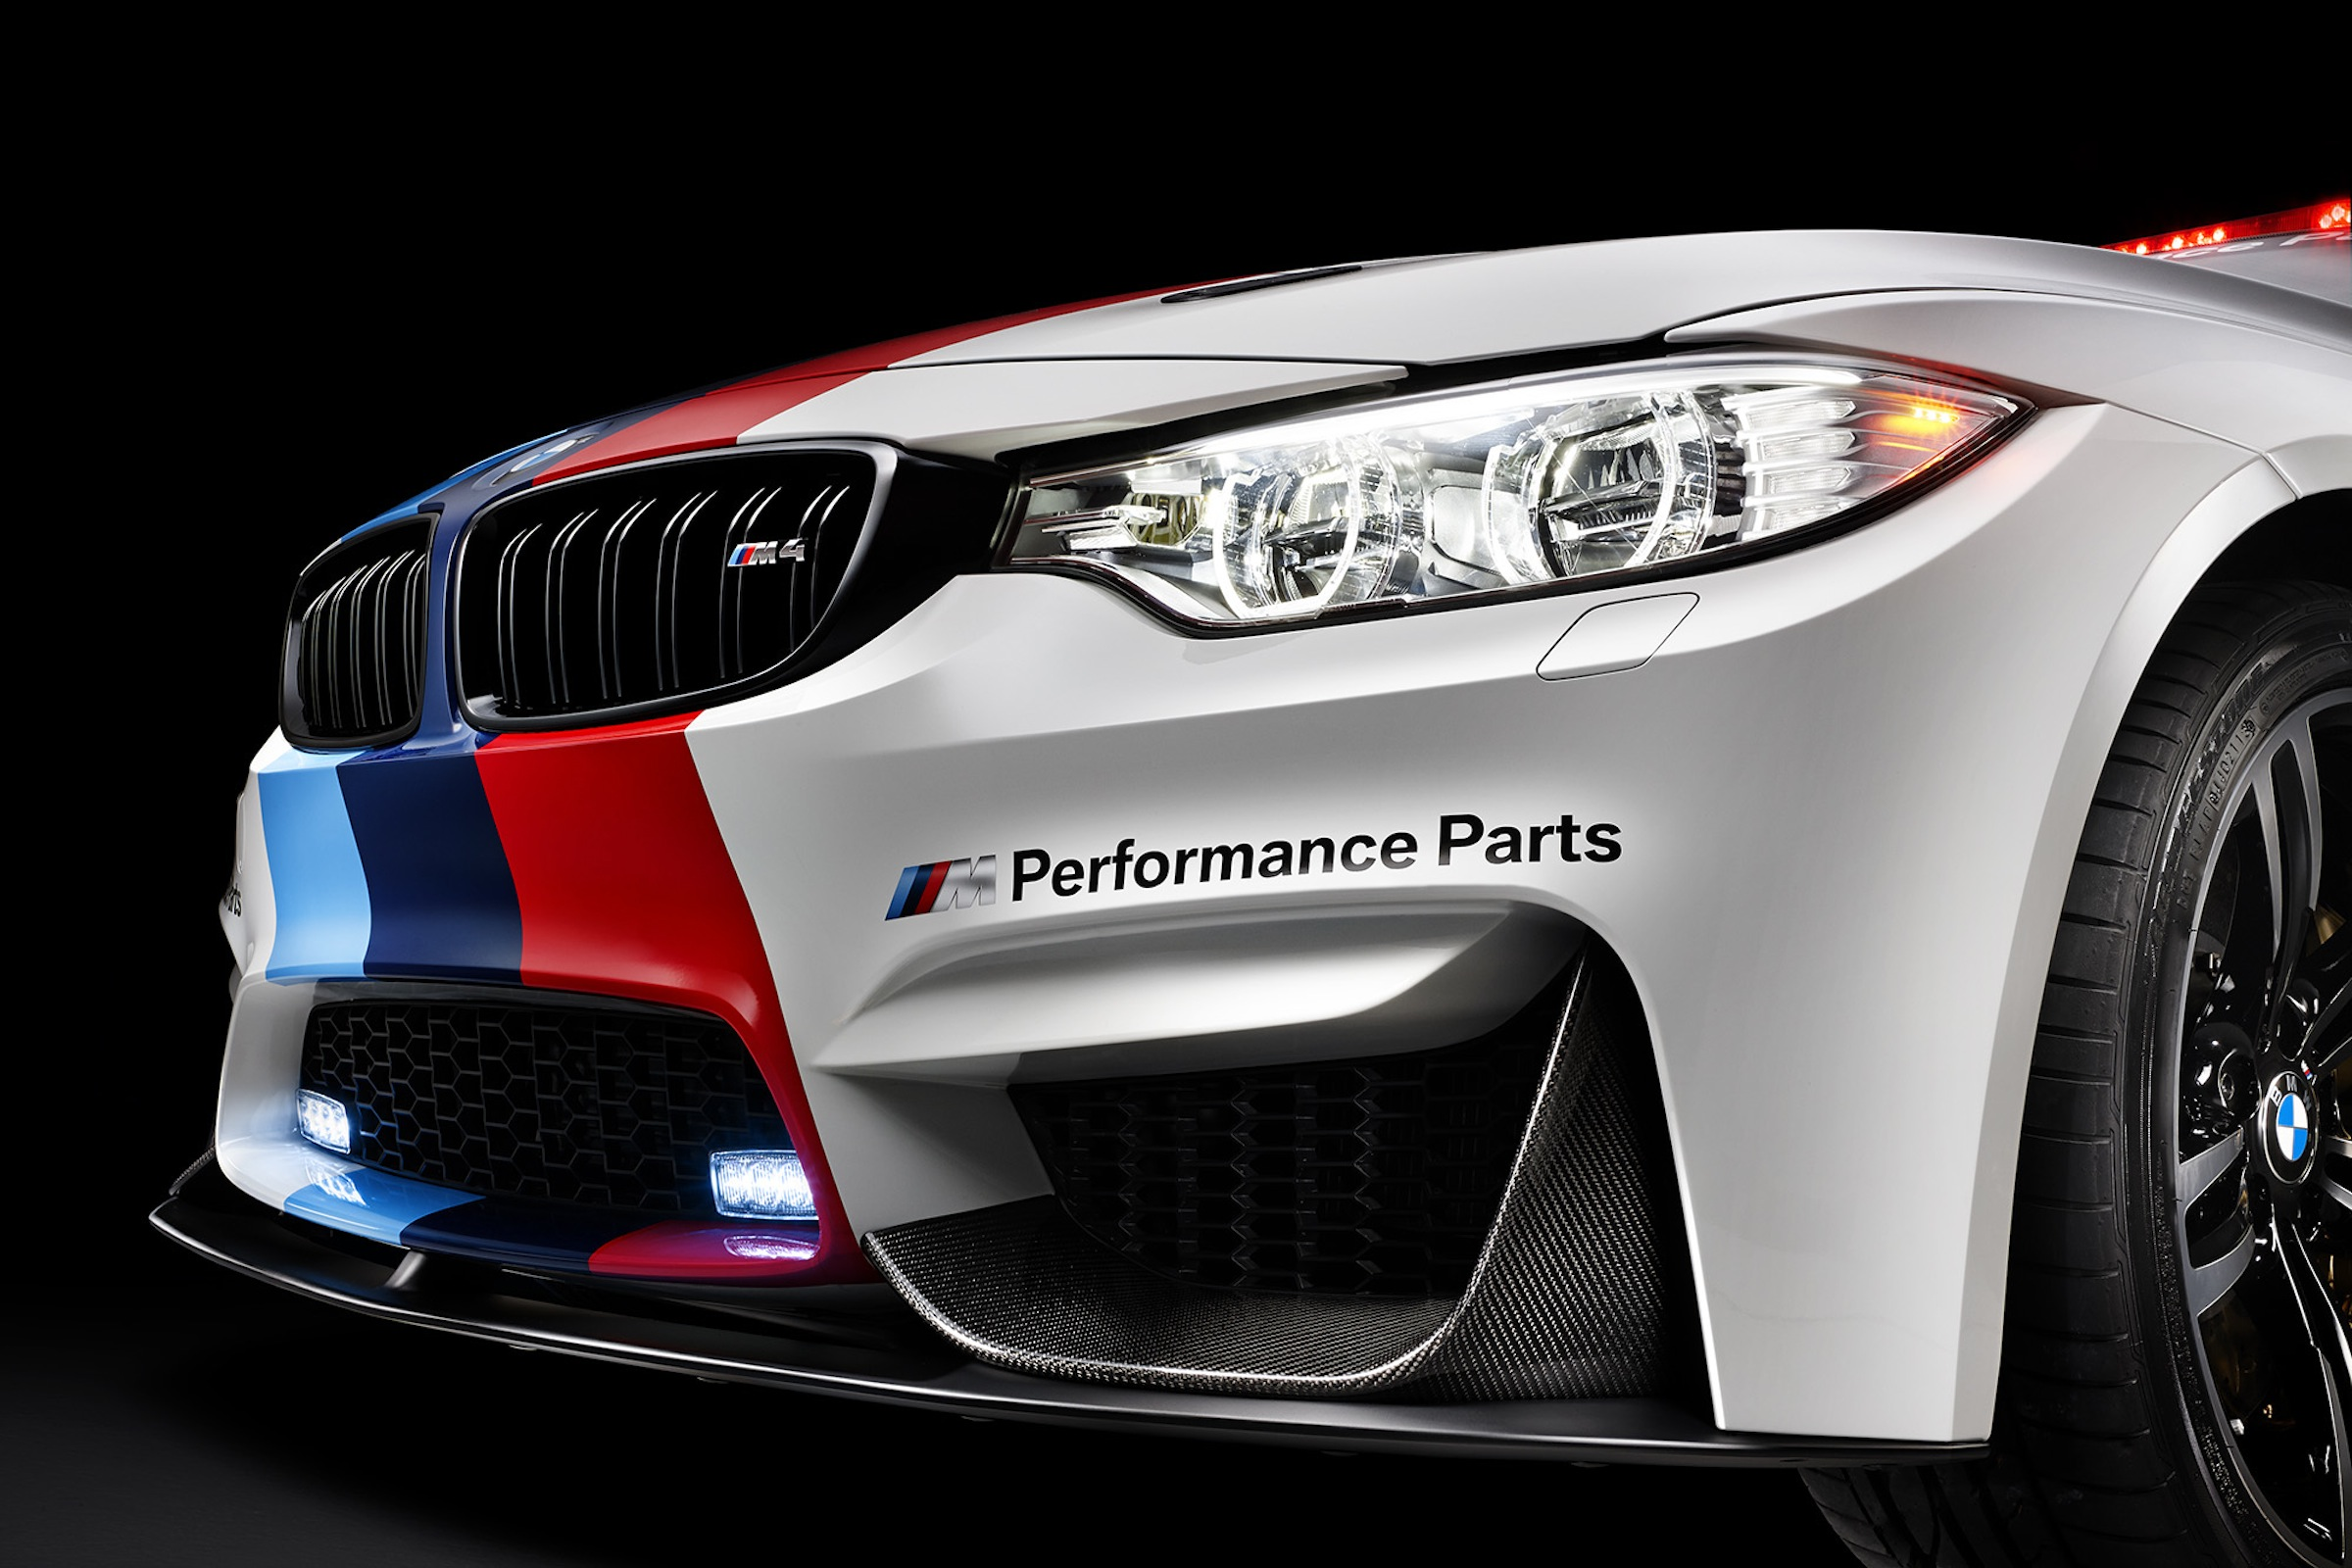 bmw m4 motogp safety car w m performance parts m. Black Bedroom Furniture Sets. Home Design Ideas